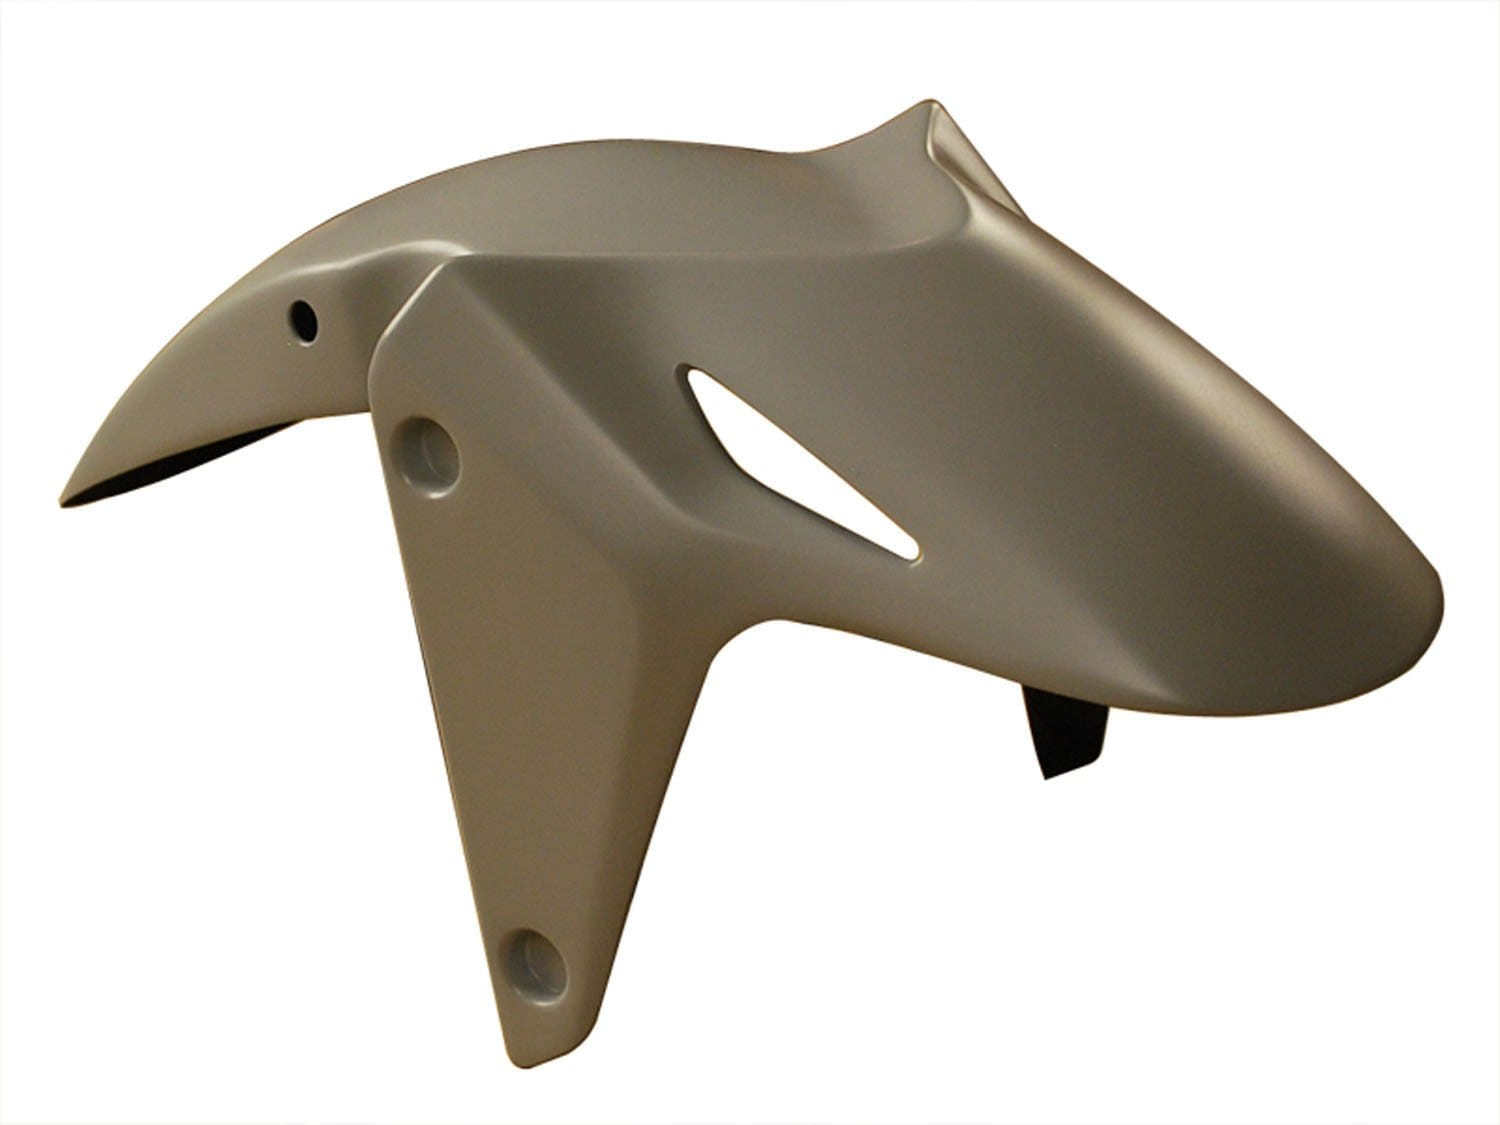 Honda CBR500R 2013-2014 Front Fender Pro Series - Woodcraft Technologies - Motorcycle Parts